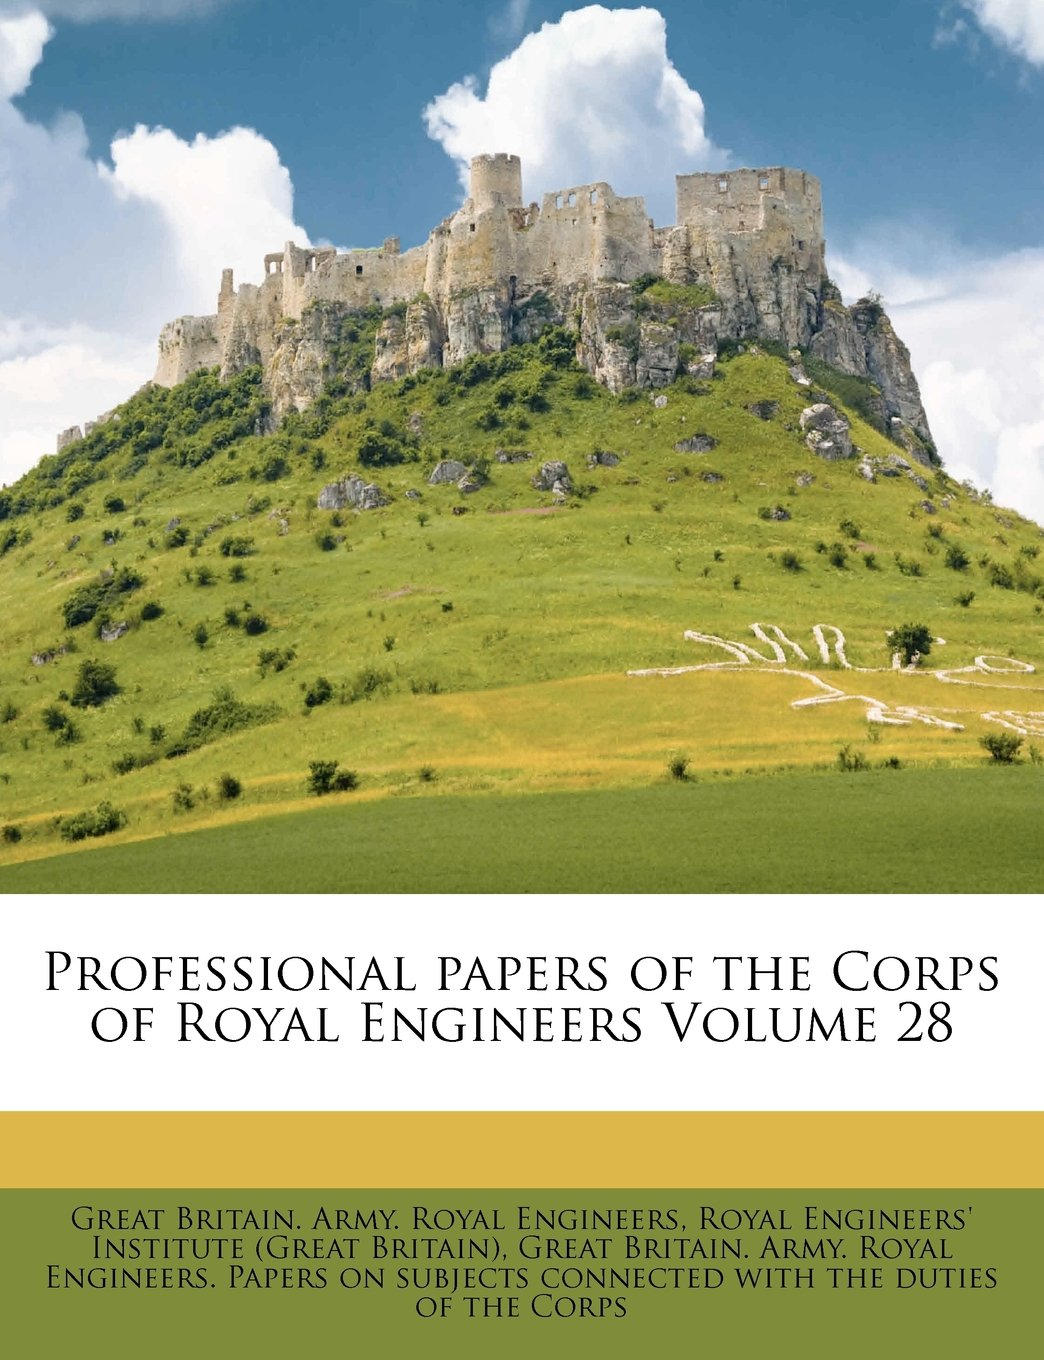 Professional papers of the Corps of Royal Engineers Volume 28 pdf